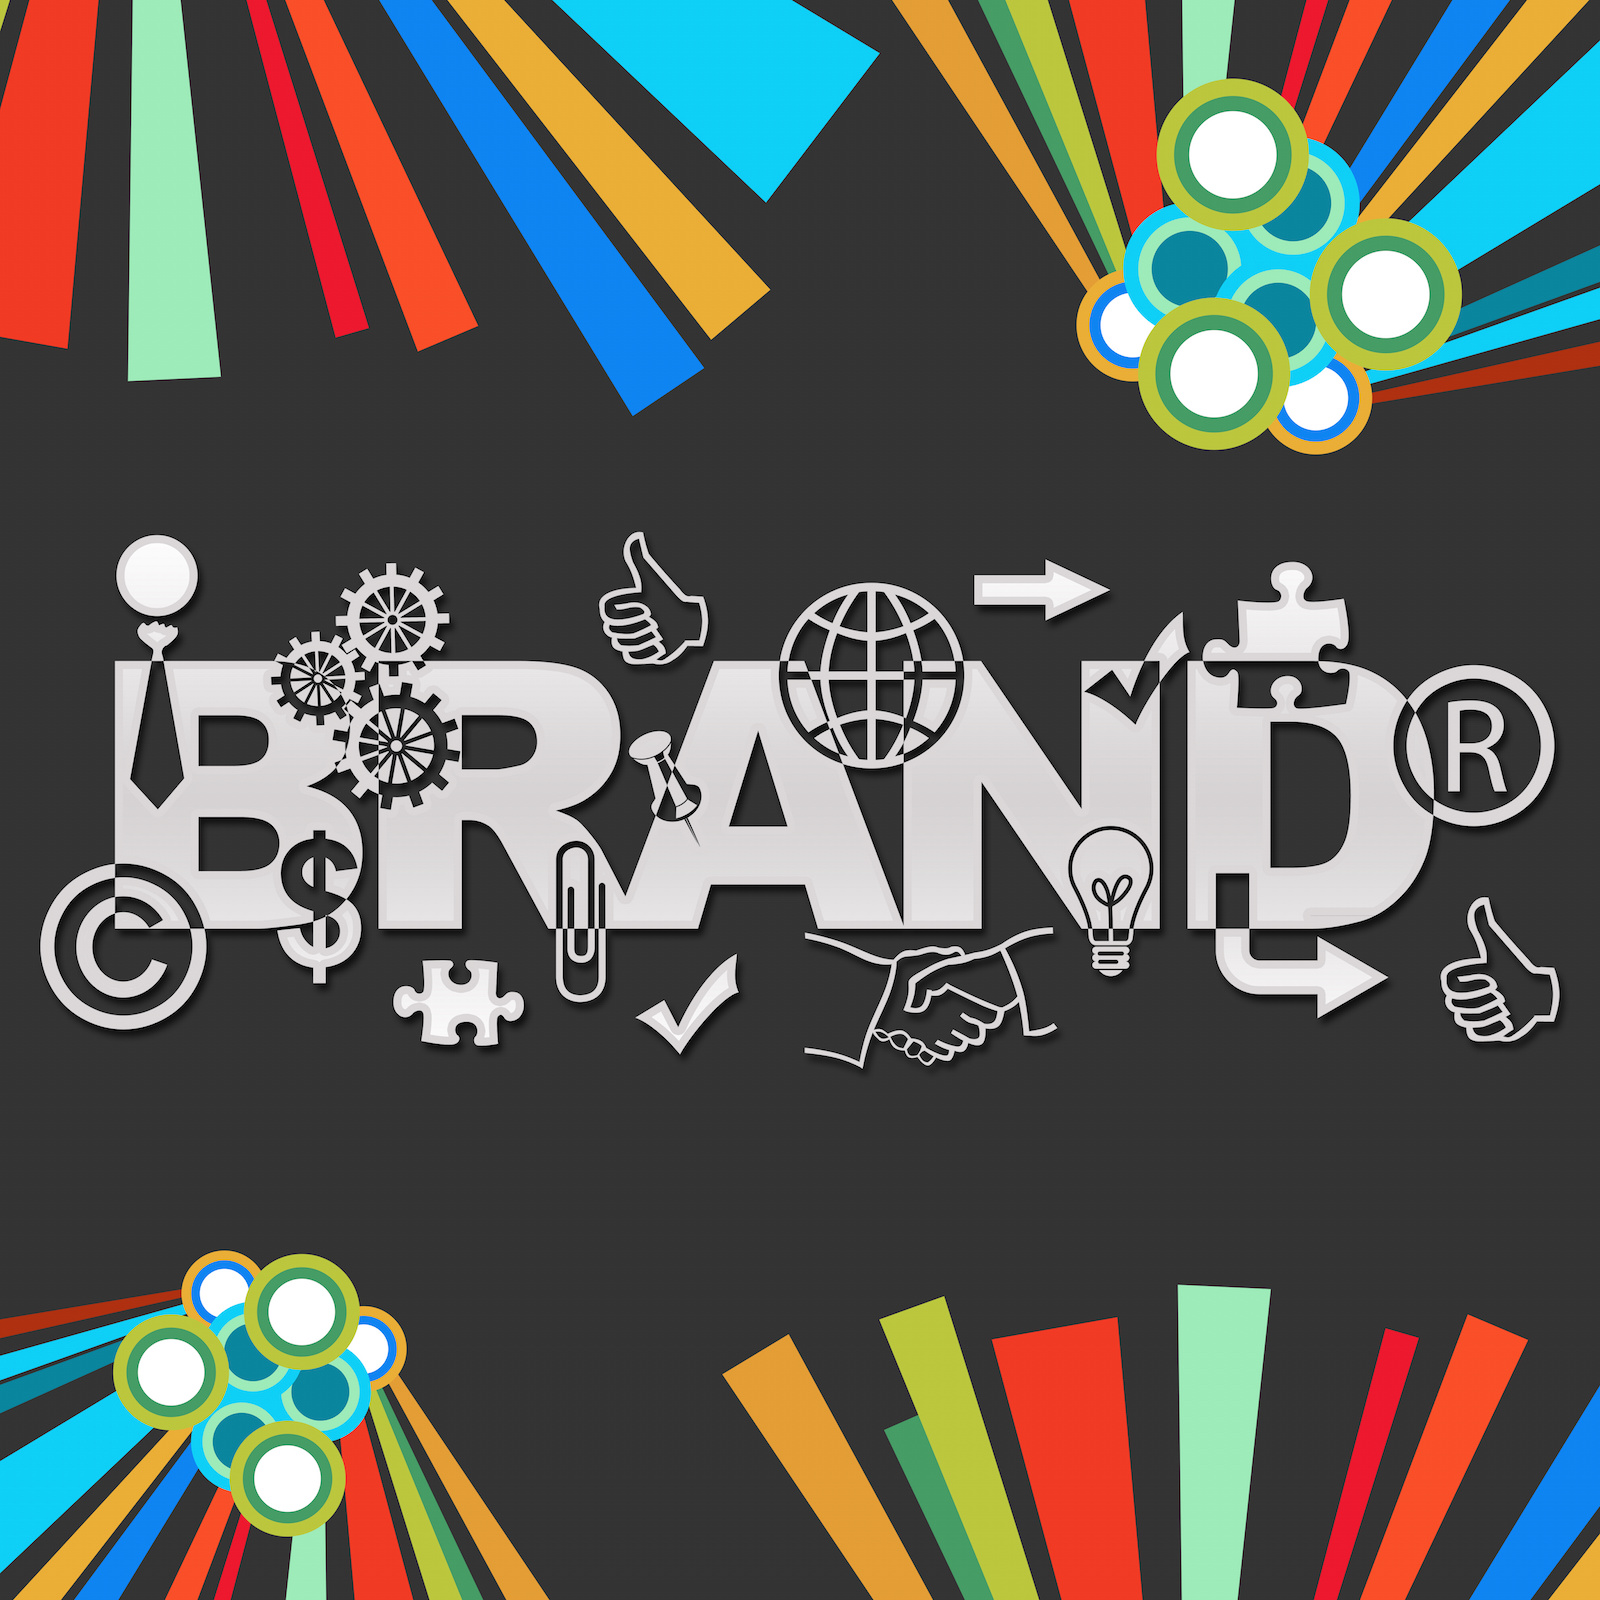 Graphic mark as a branding element